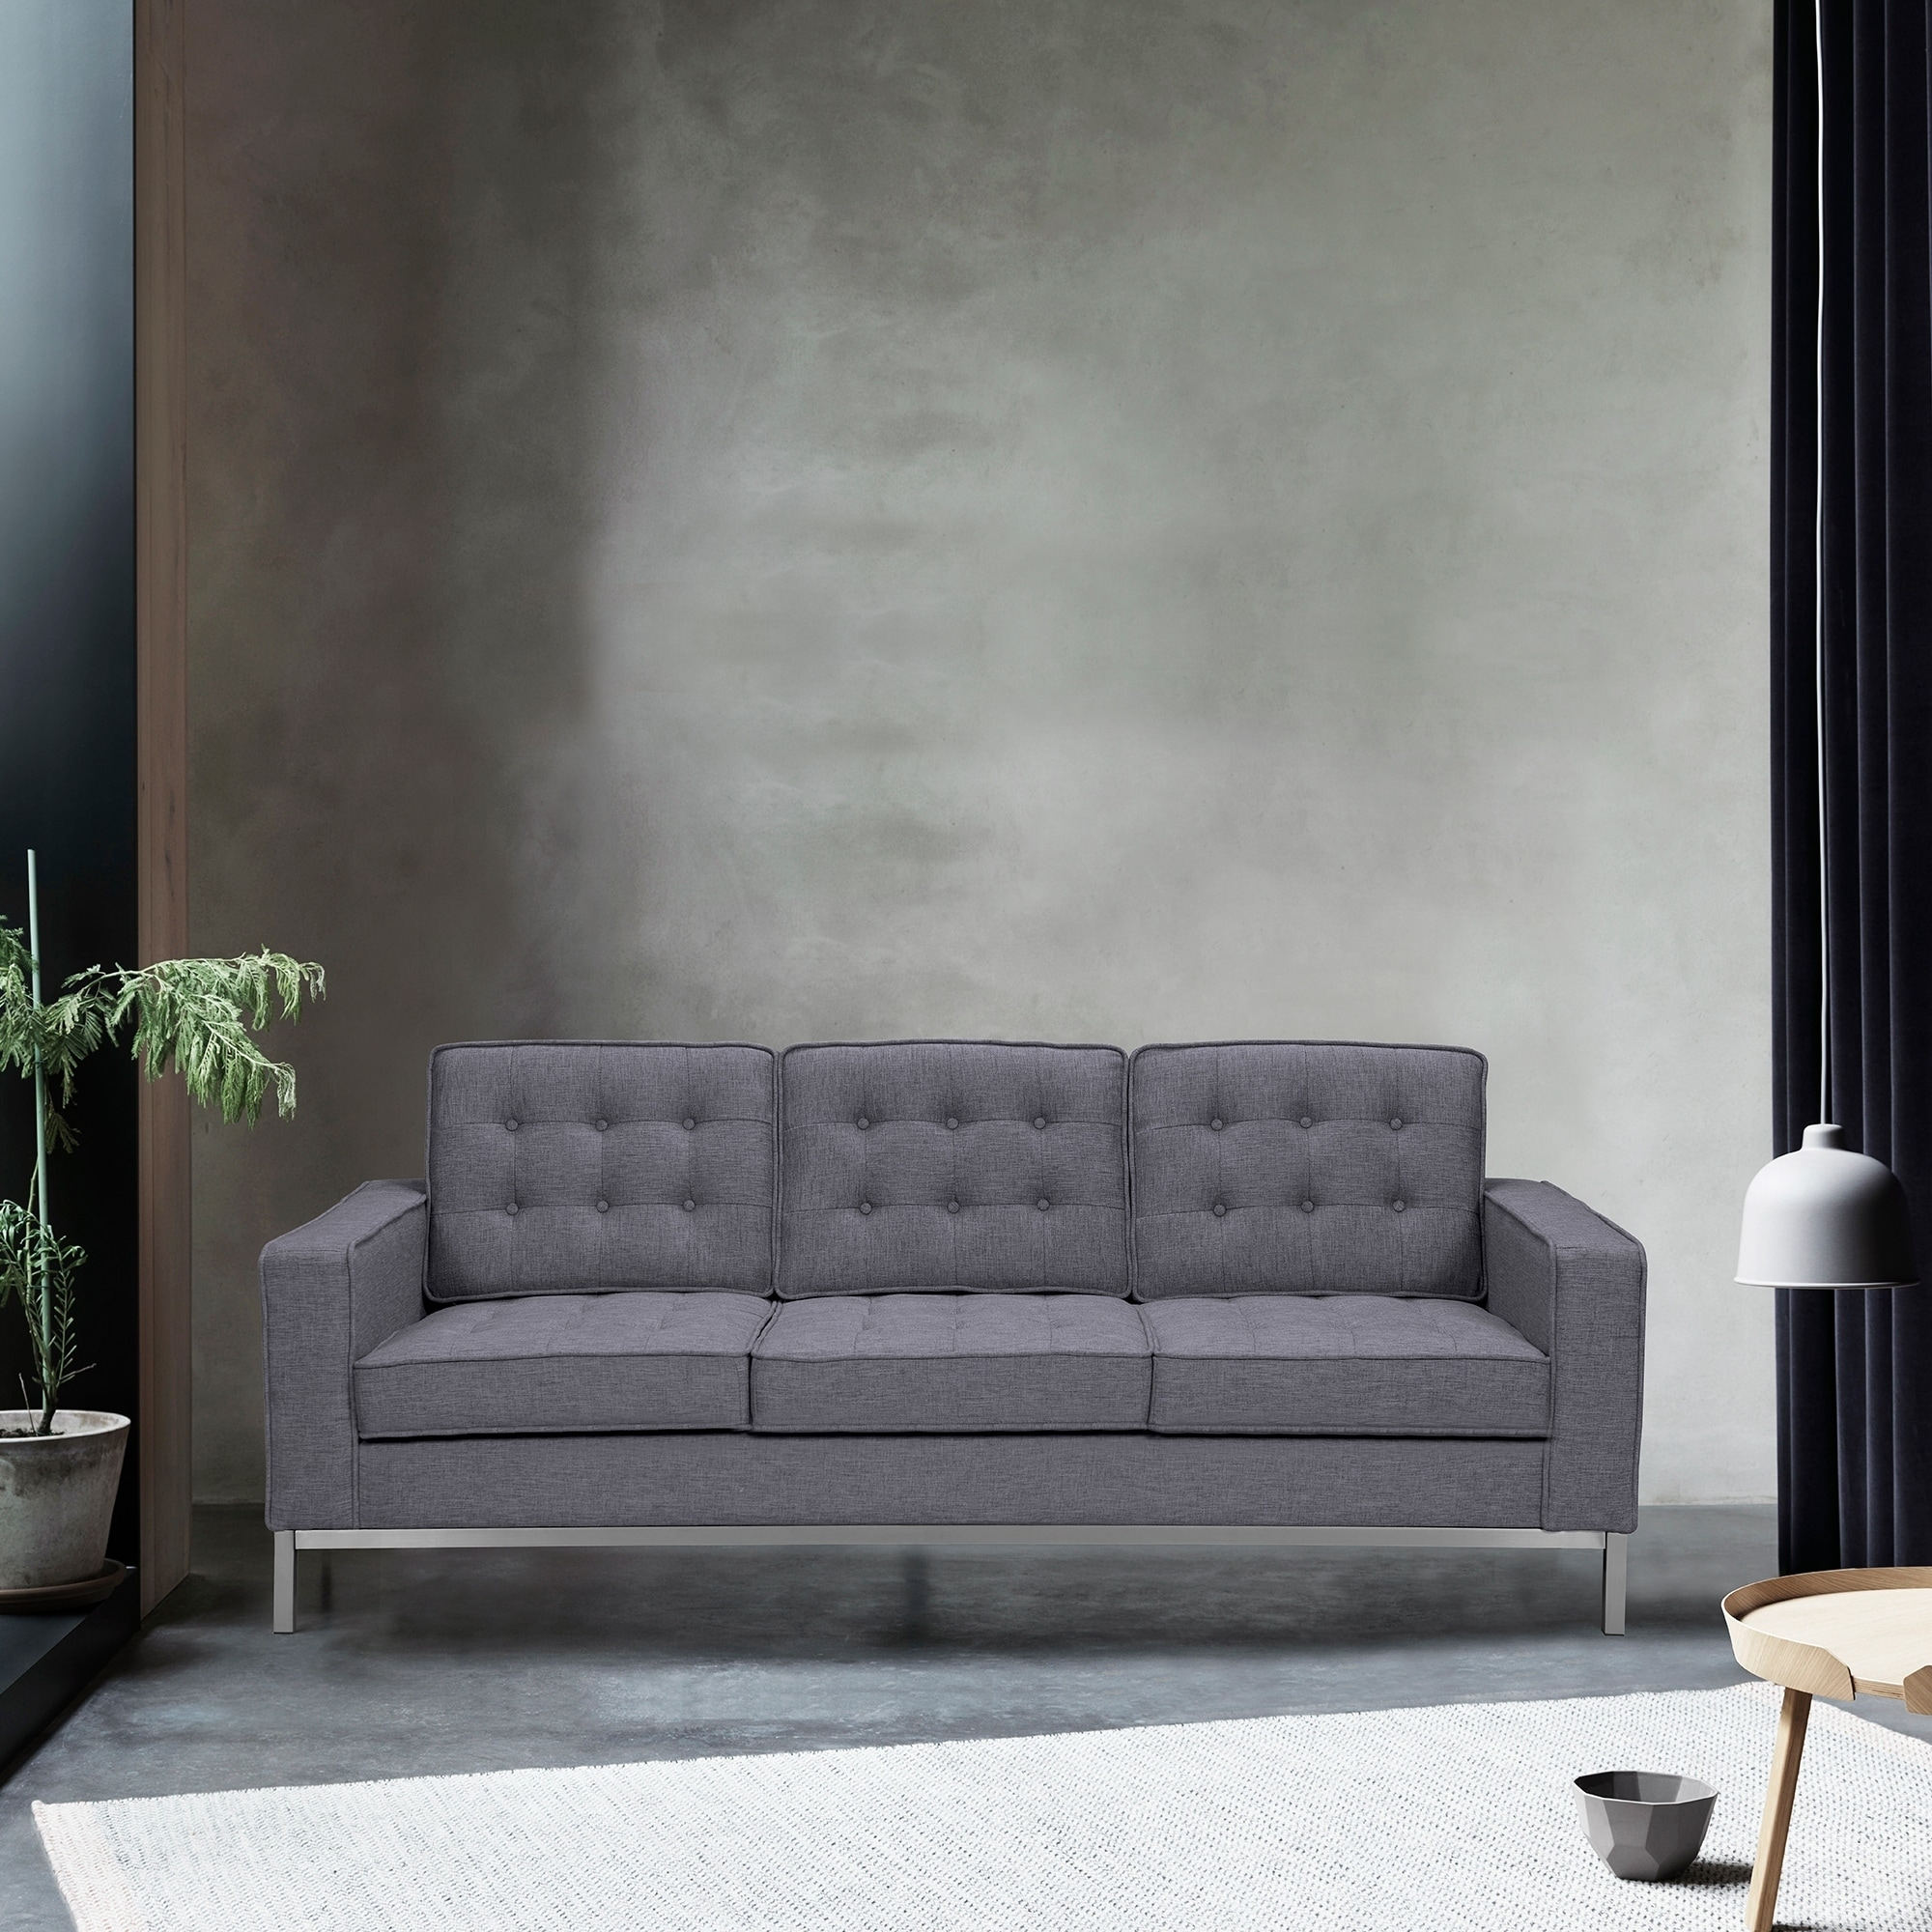 Armen Living Chandler Contemporary Sofa In Brushed Stainless Steel Finish And Dark Grey Fabric